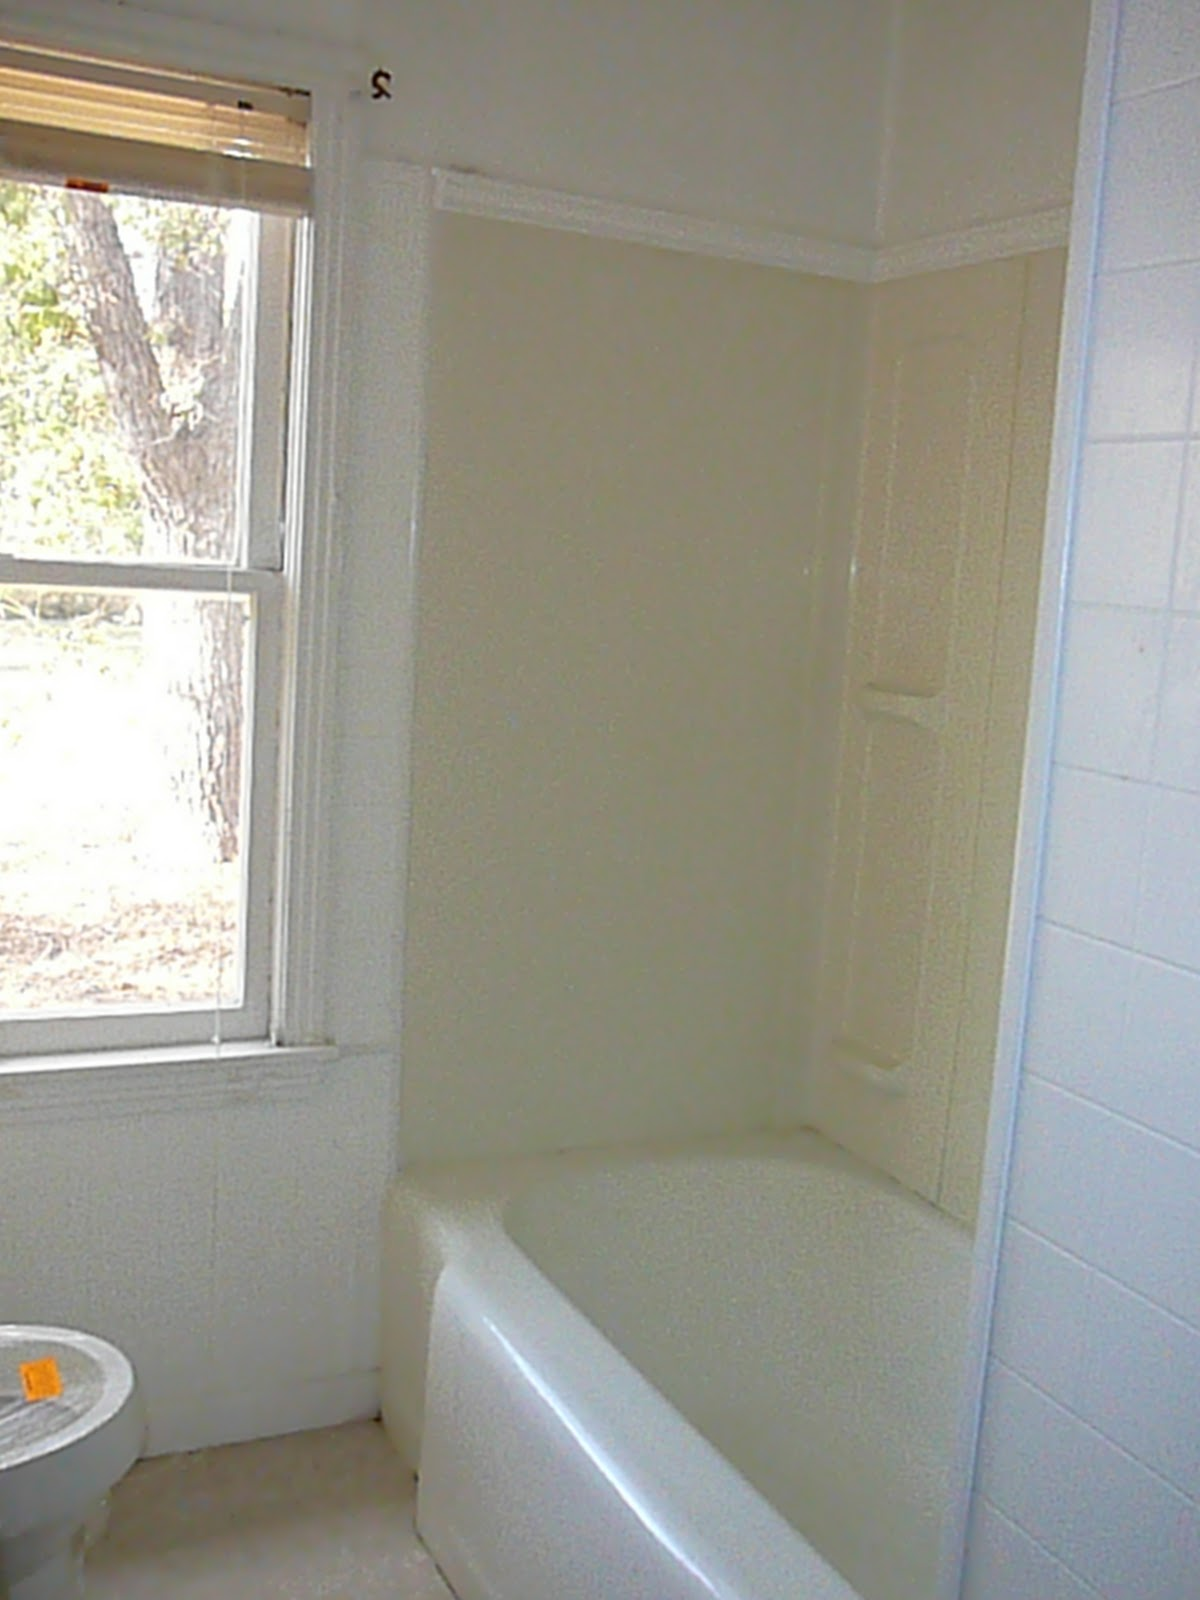 BATHTUB REFINISHING MN, FIBERGLASS BATHTUB REPAIR MN, FIBERGLASS